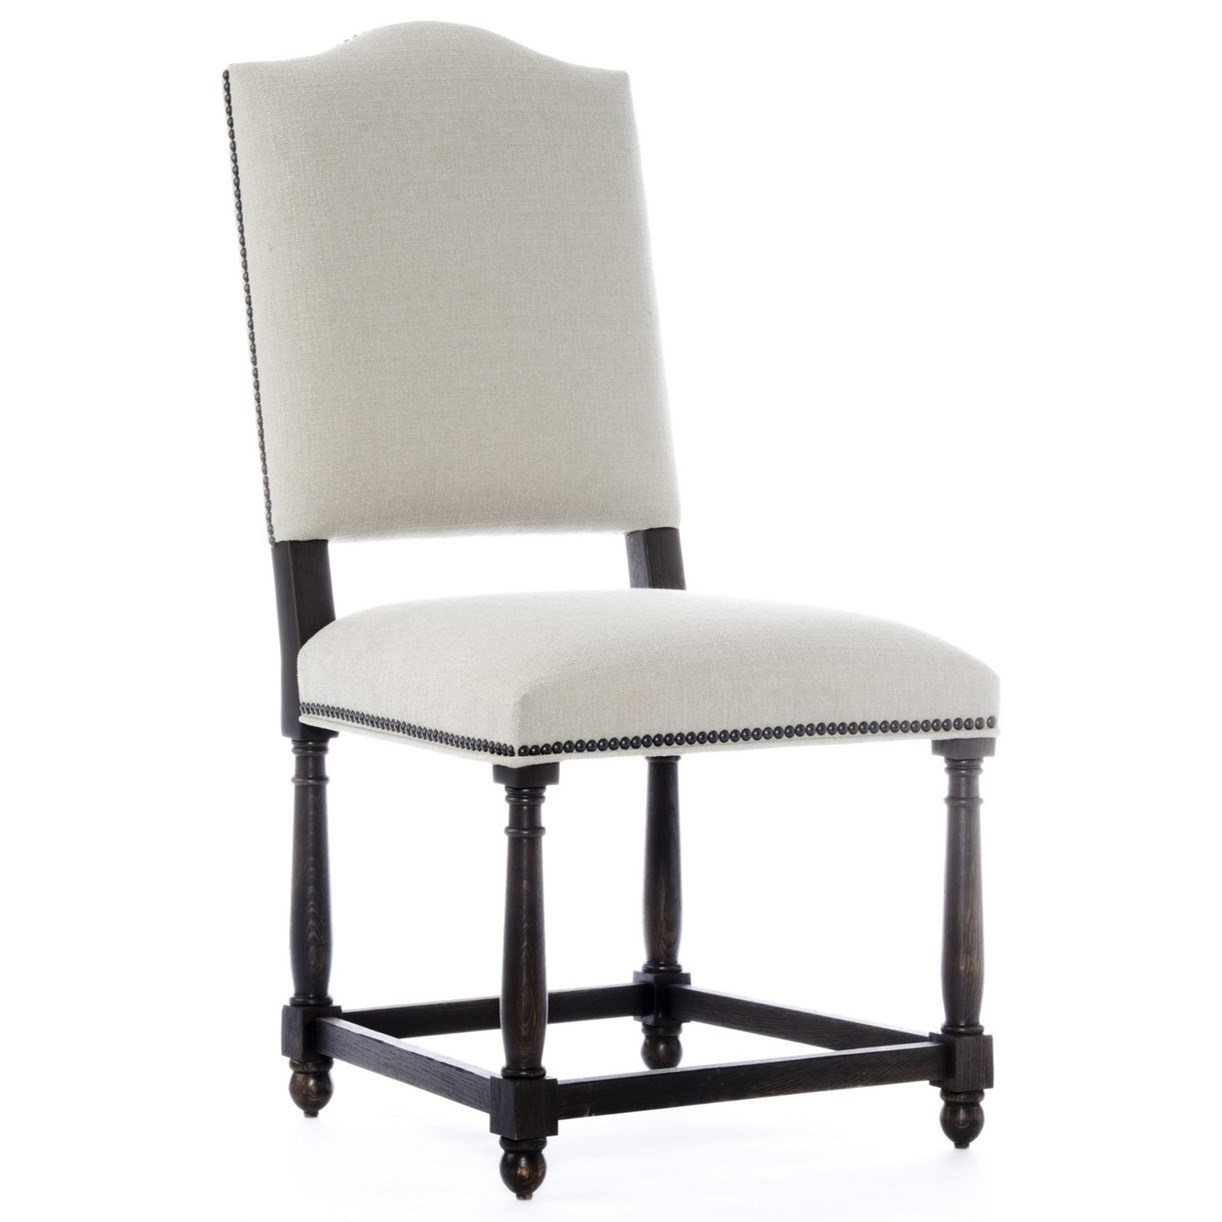 Elements Charlie Side Chair by Palettes by Winesburg at Dinette Depot